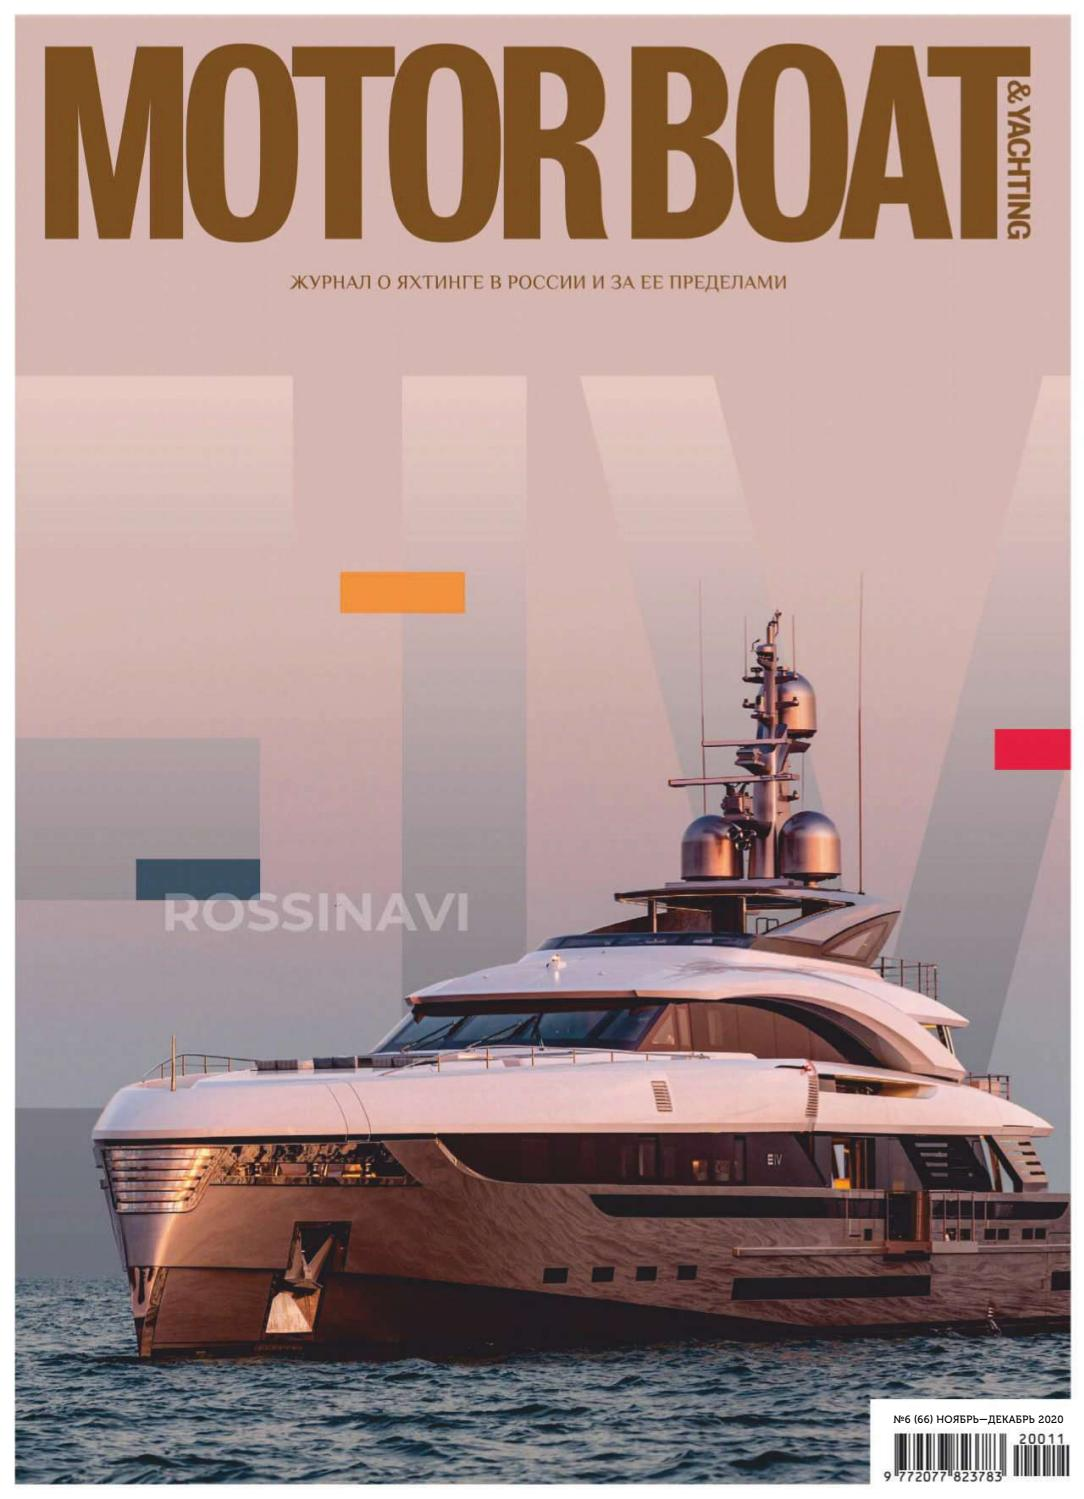 Motor Boat & Yachting Russia №6, 2020